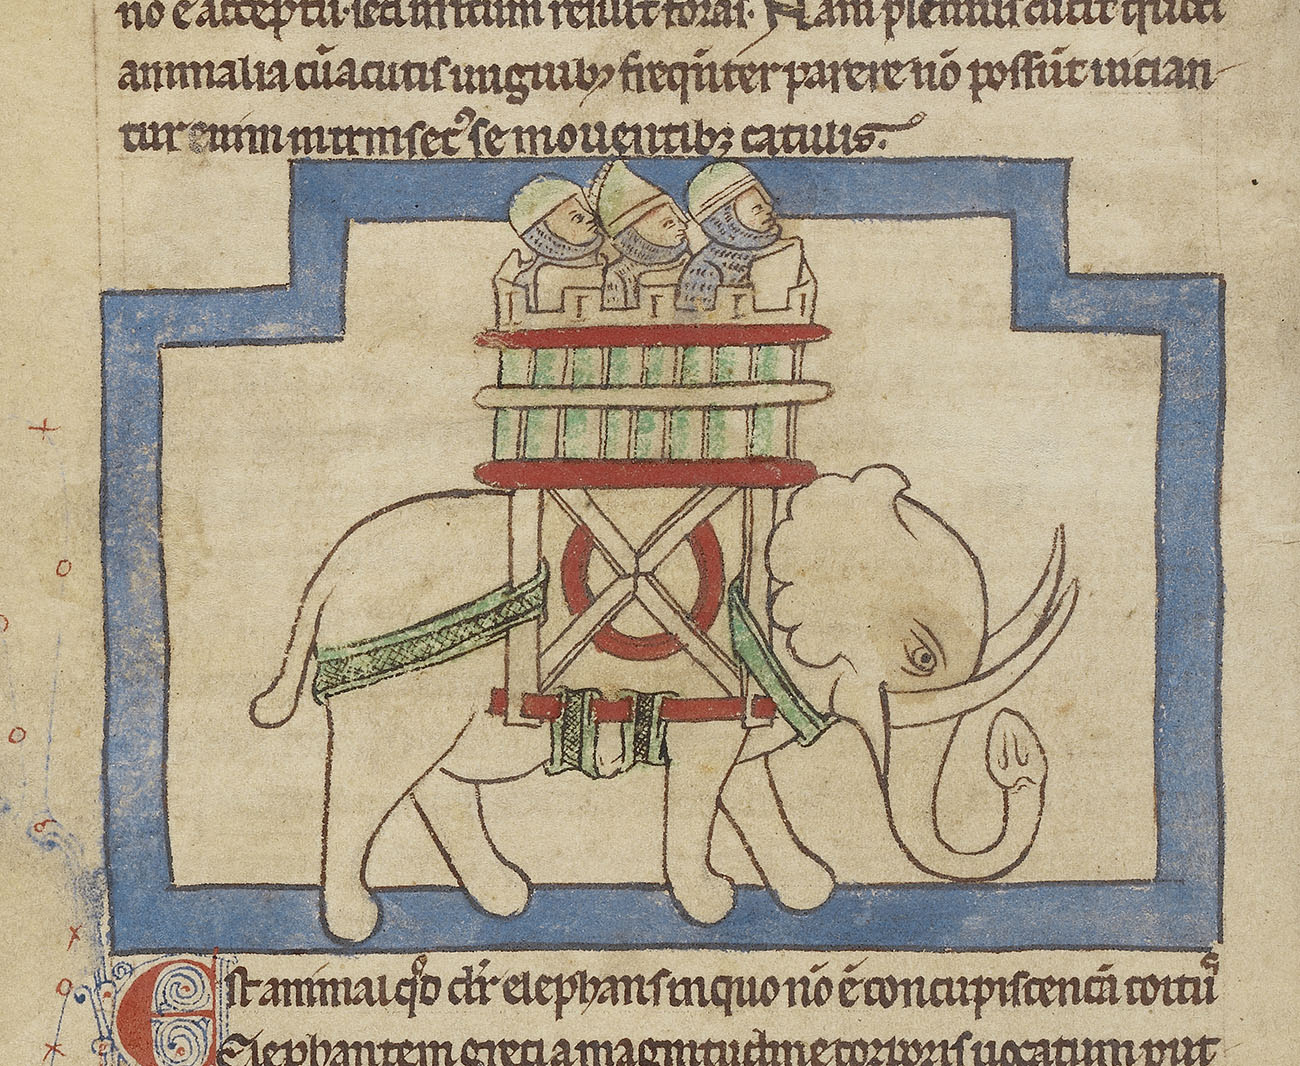 An illuminated manuscript page depicting an elephant with curled tusks and a long trunk carrying a tower containing three people on its back.